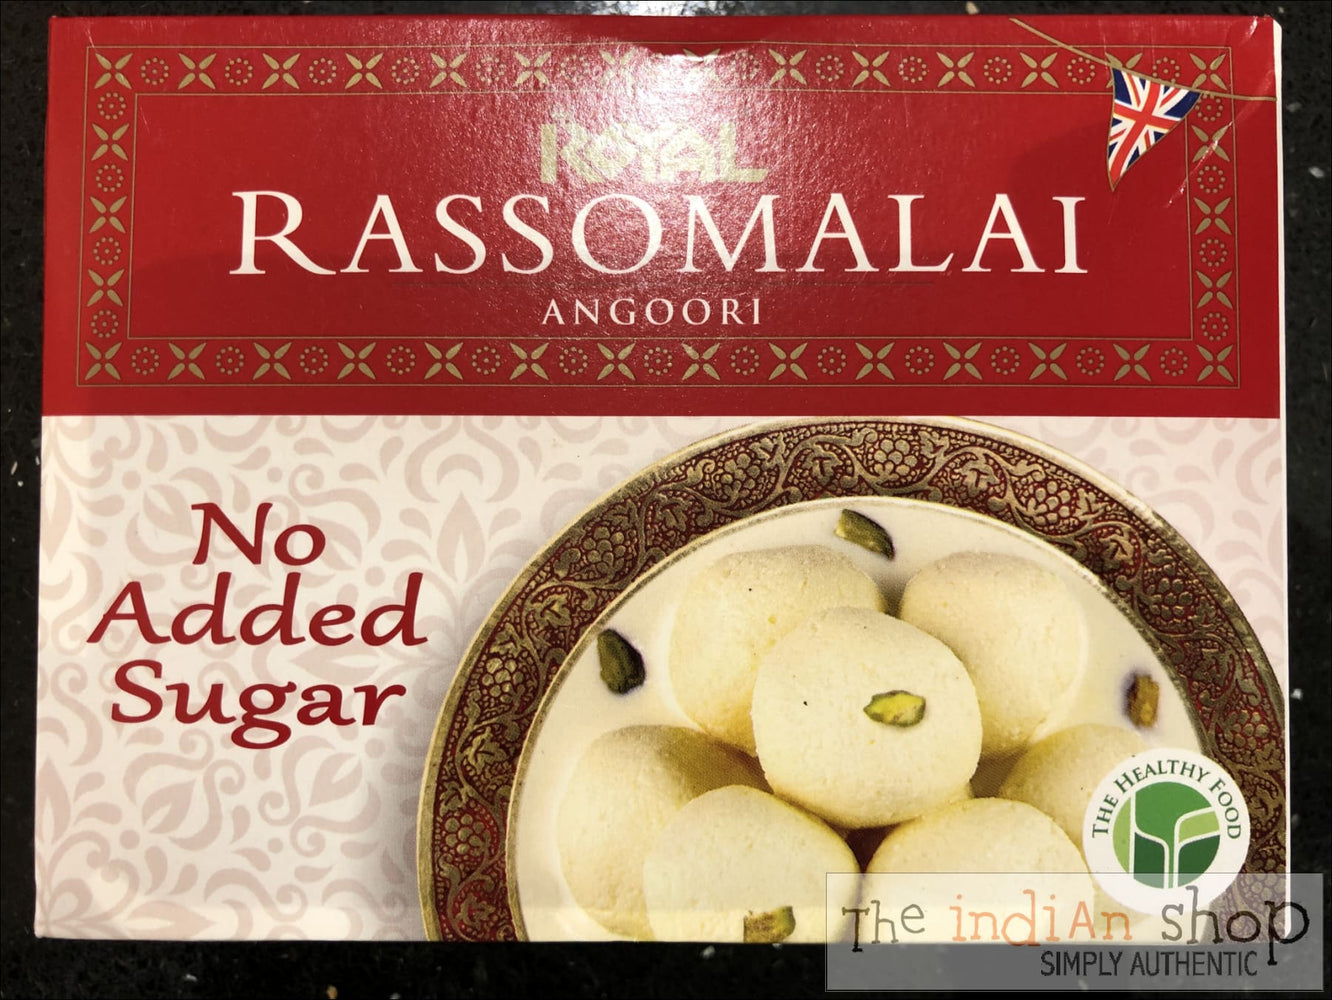 Royal Rassomalai Angoori -no added sugar - Mithai